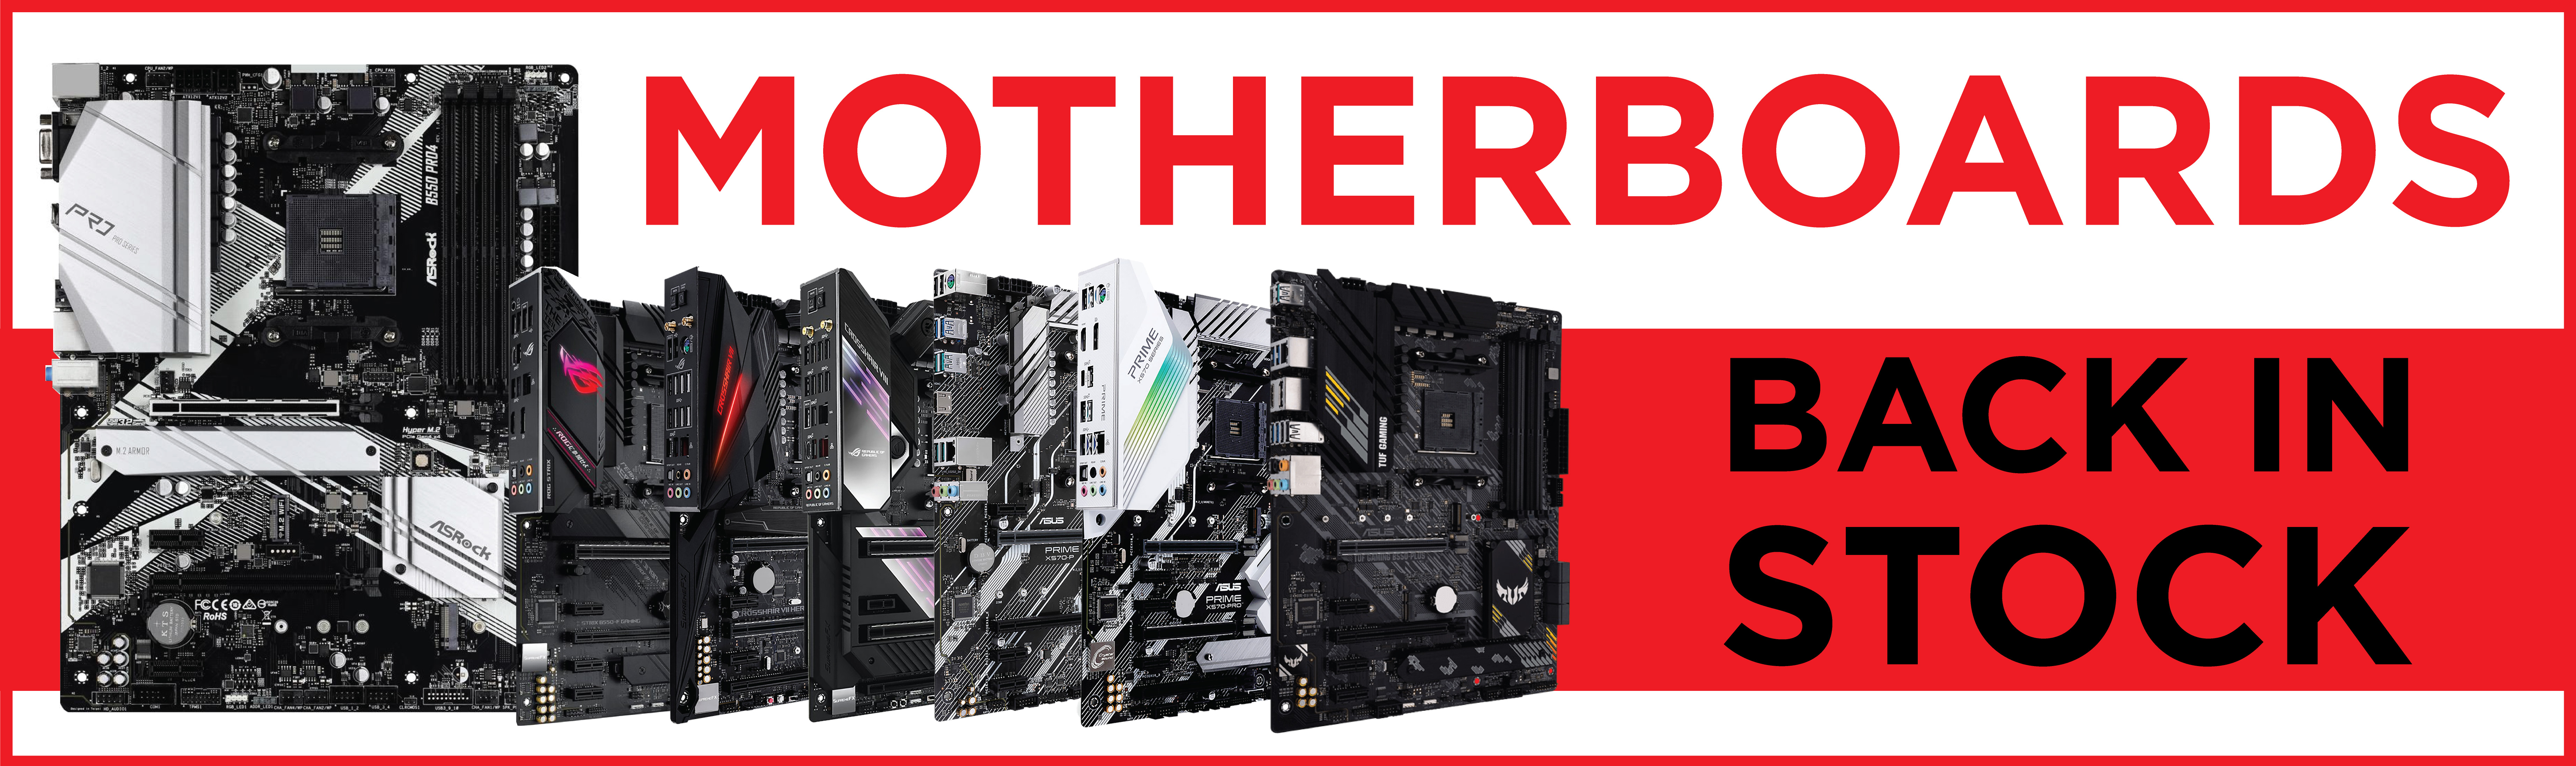 Motherboards have been restocked! Get it before they're gone.